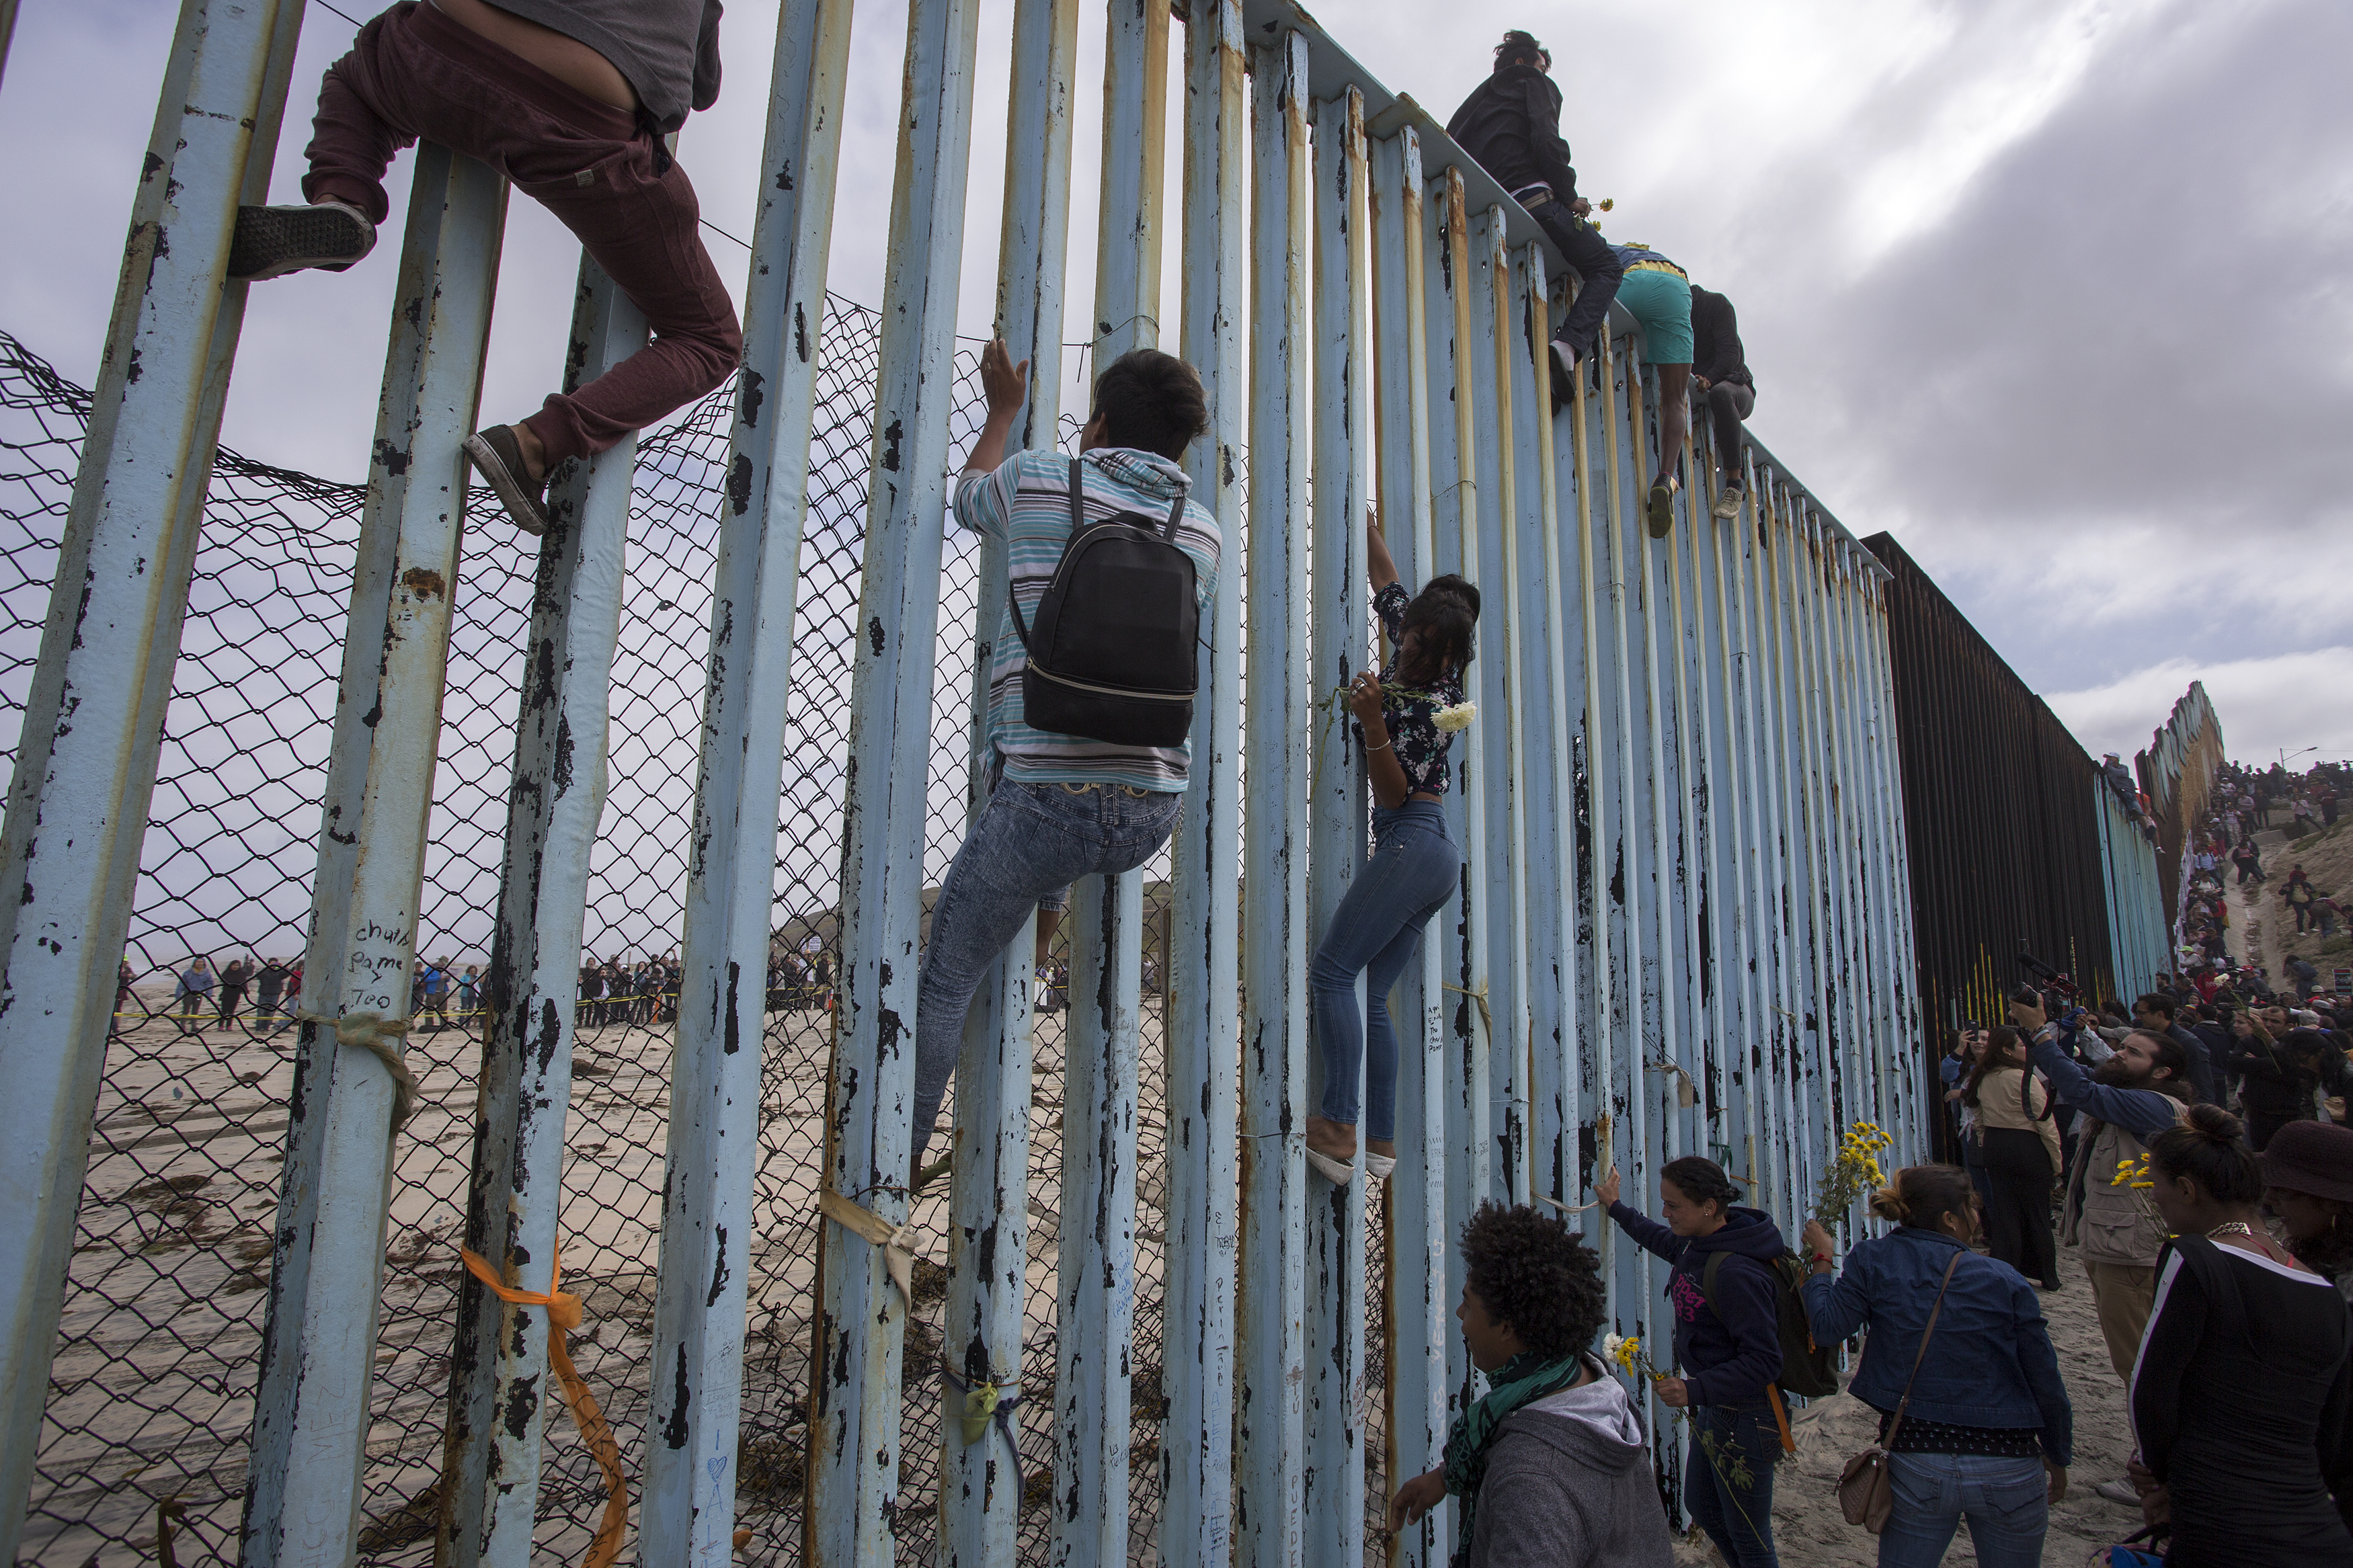 TIJUANA, MEXICO - APRIL 29: People climb a section of border fence to look into the U.S. as members of a caravan of Central American asylum seekers arrive to a rally on April 29, 2018 in Tijuana, Baja California Norte, Mexico. More than 300 immigrants, the remnants of a caravan of Central Americans that journeyed across Mexico to ask for asylum in the United States, have reached the border to apply for legal entry. (Photo by David McNew/Getty Images)